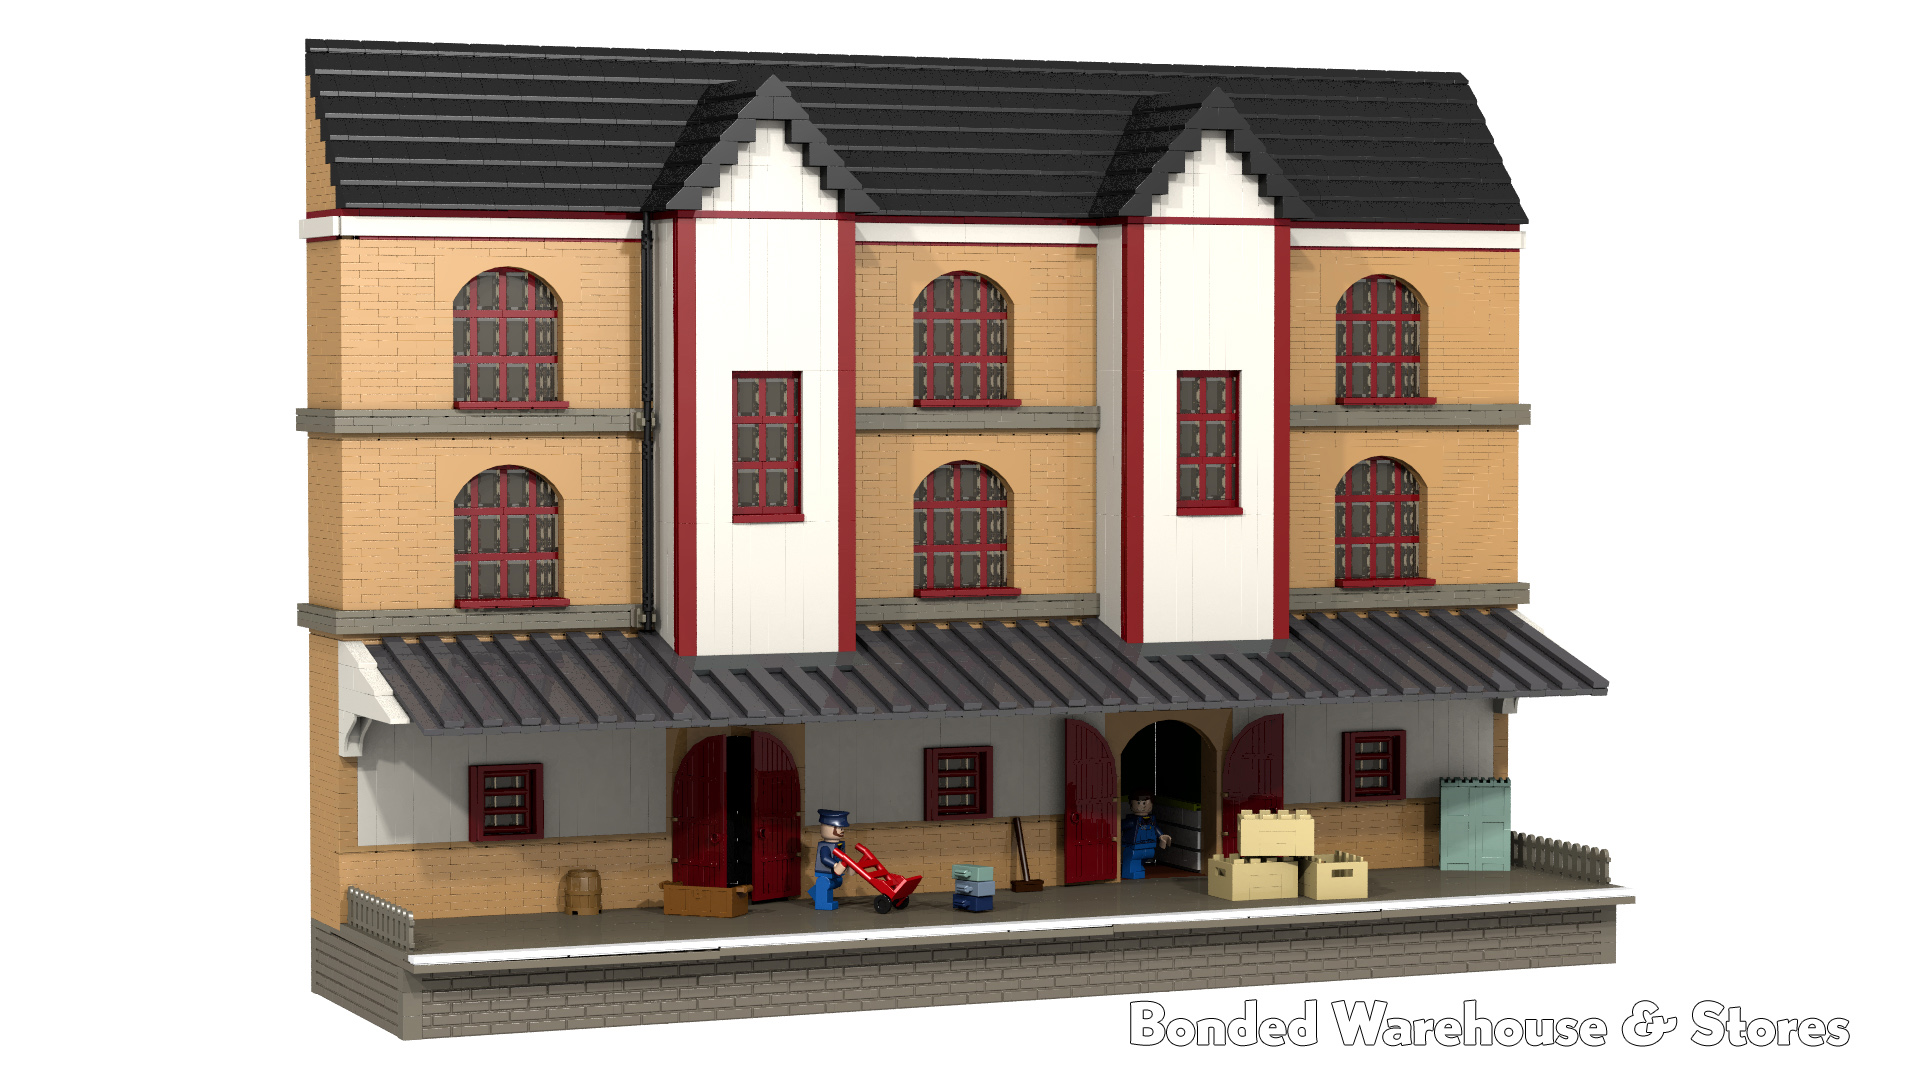 01a_bonded_warehouse_-_render.jpg